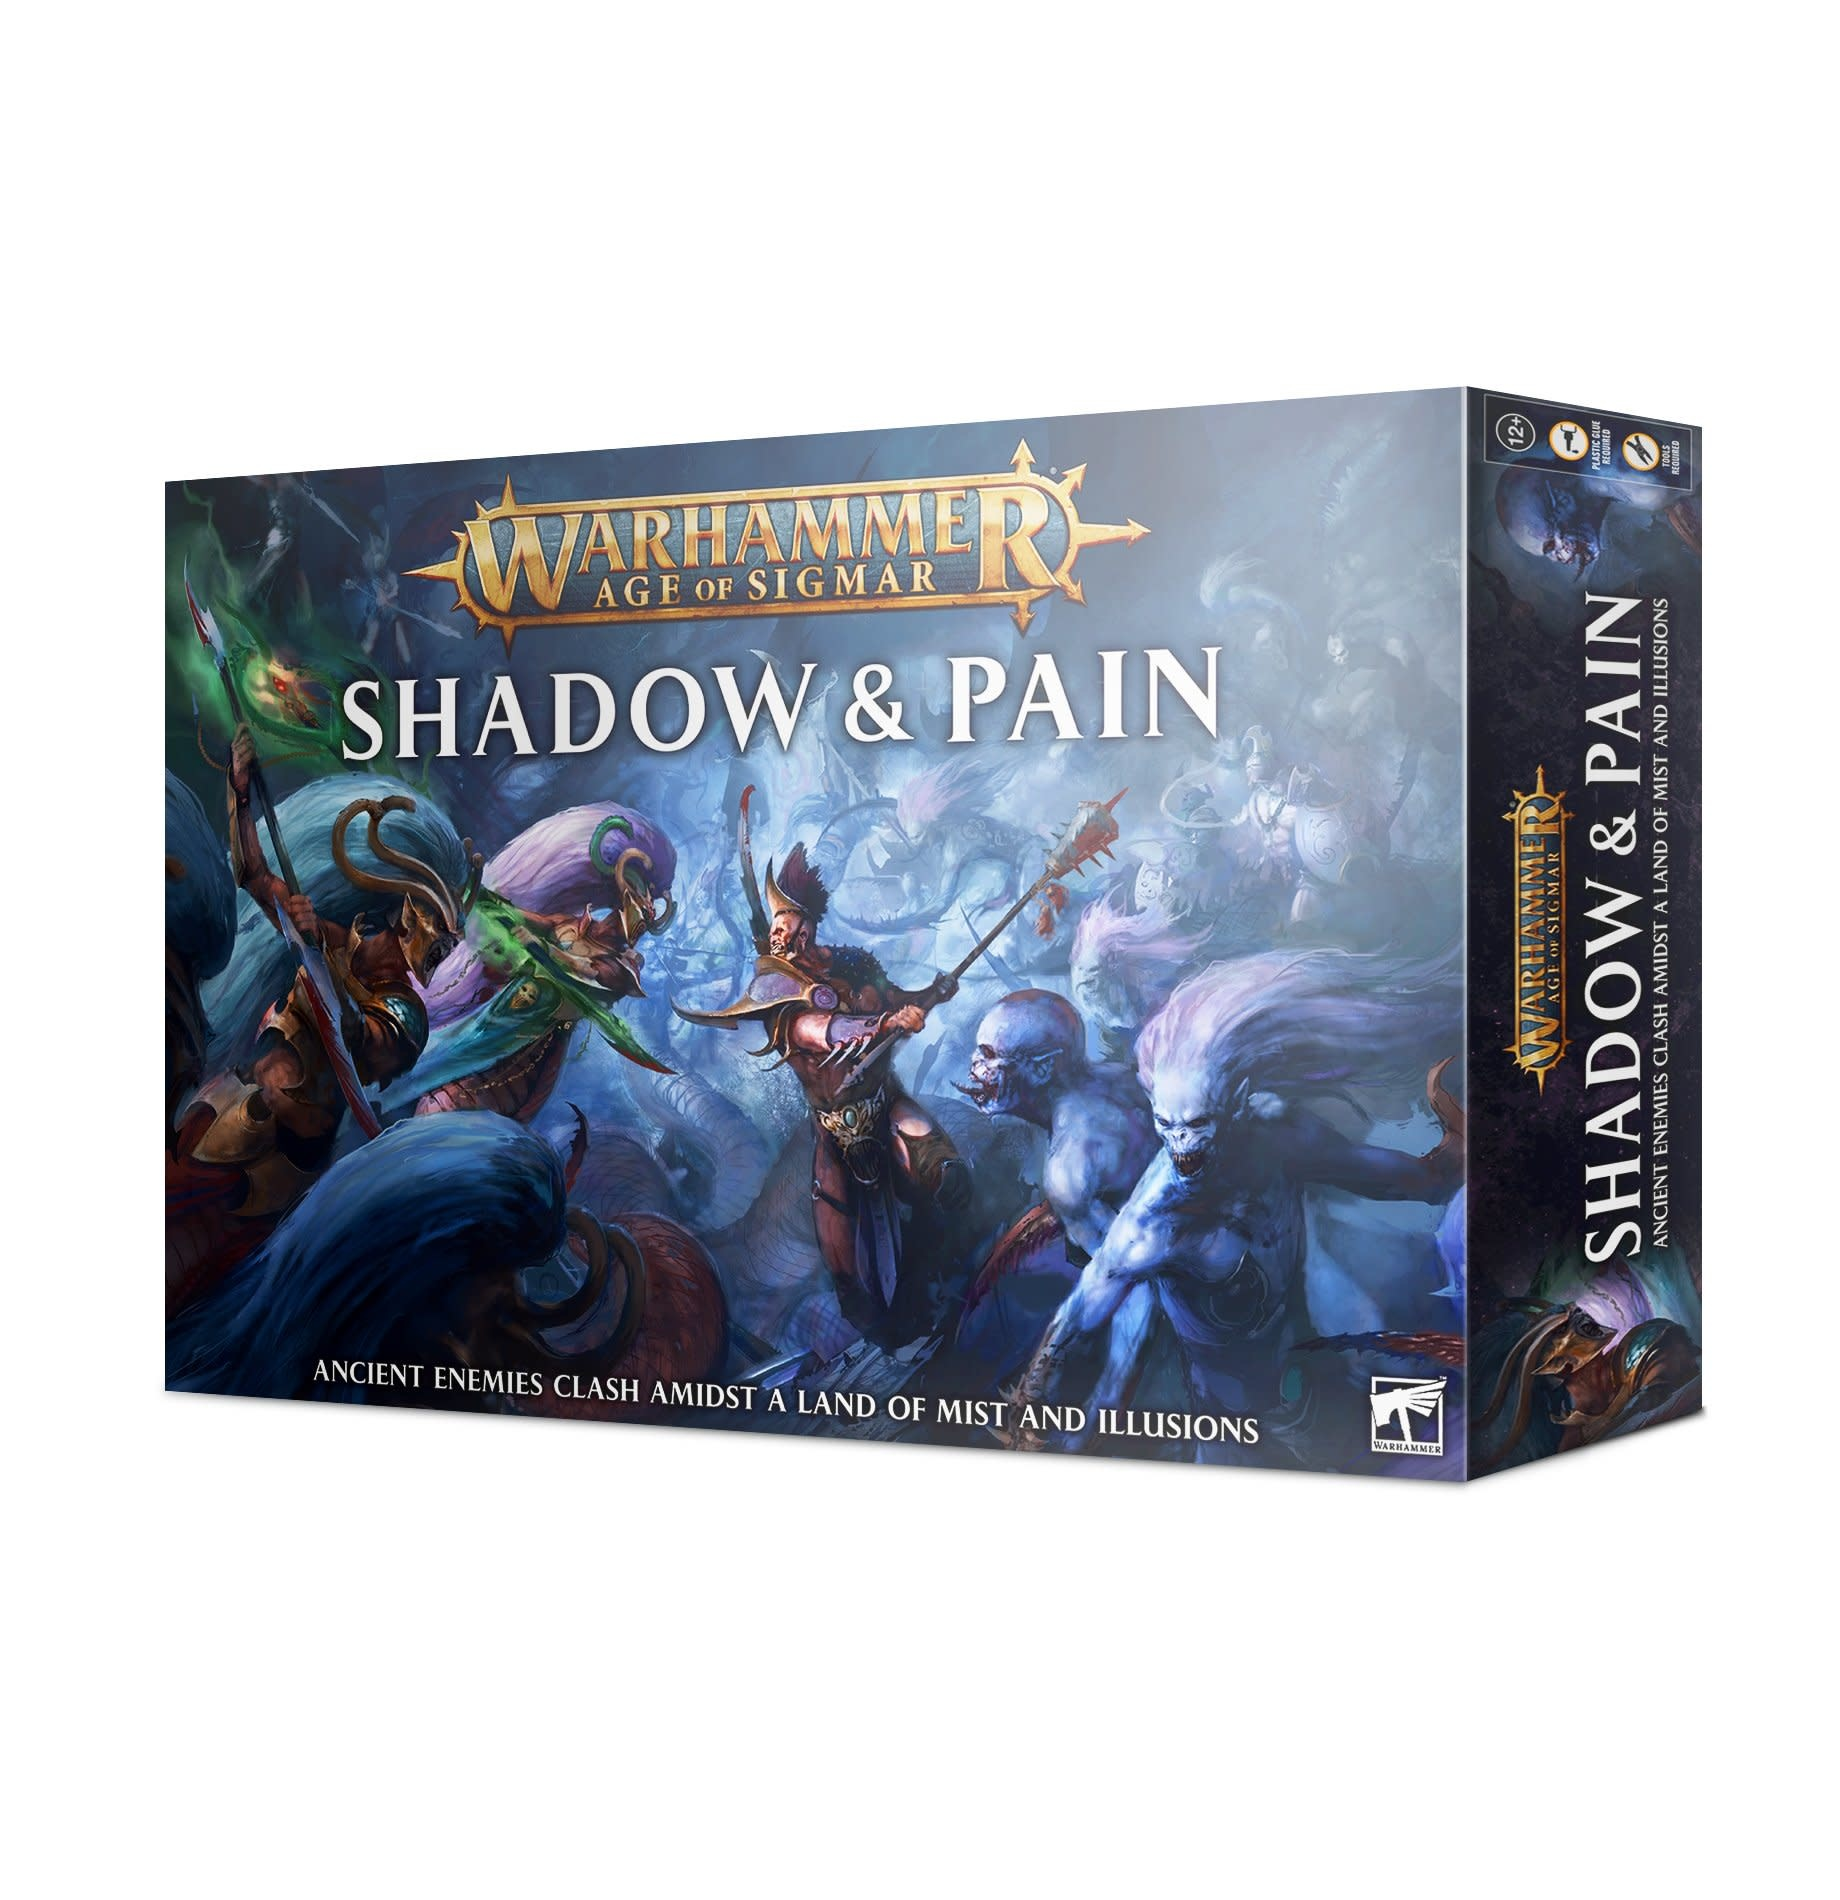 Games-Workshop Warhammer Age of Sigmar: Shadow and Pain